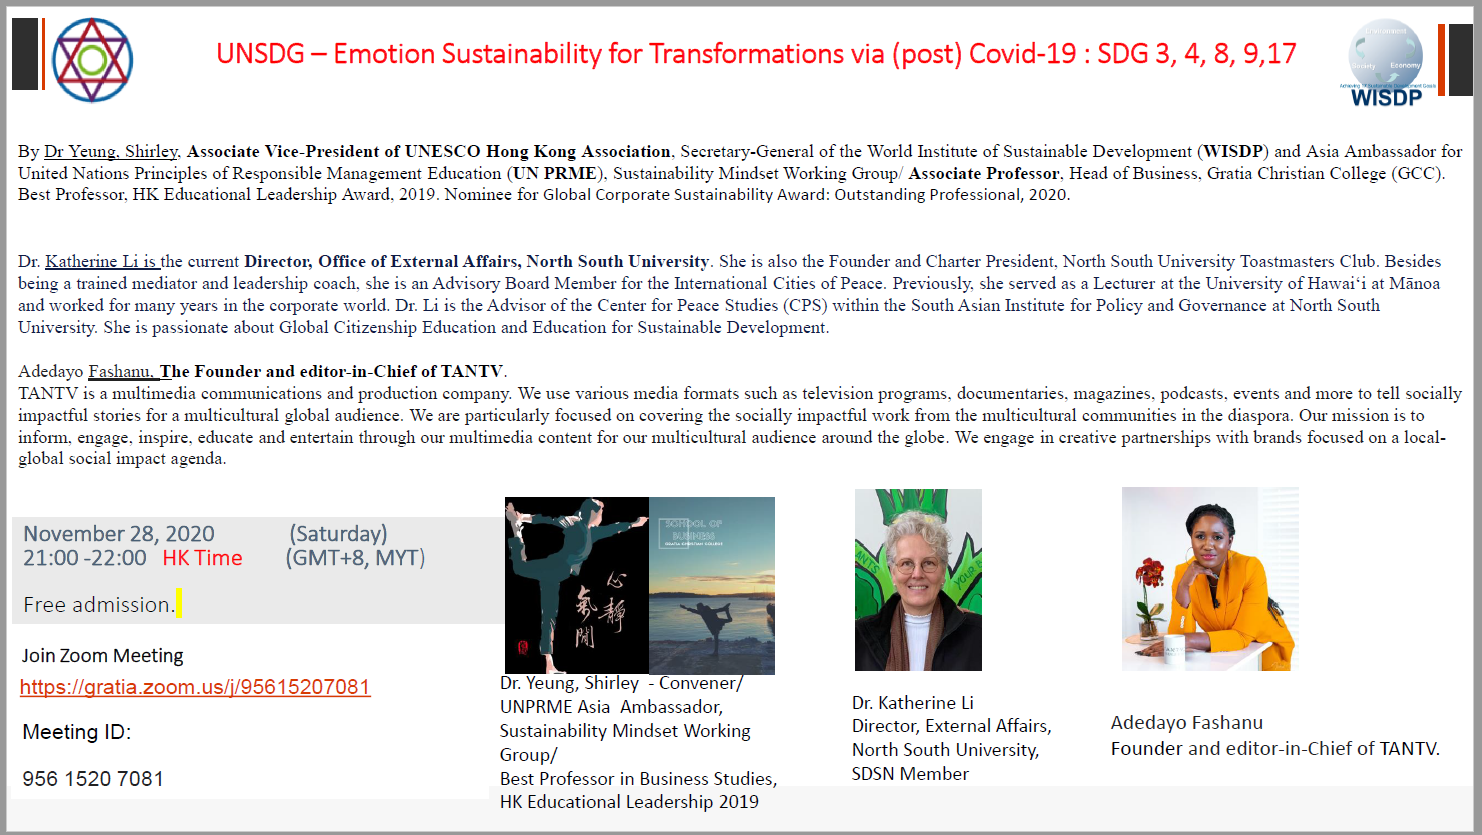 UNSDG Transformation 28 Nov 2020